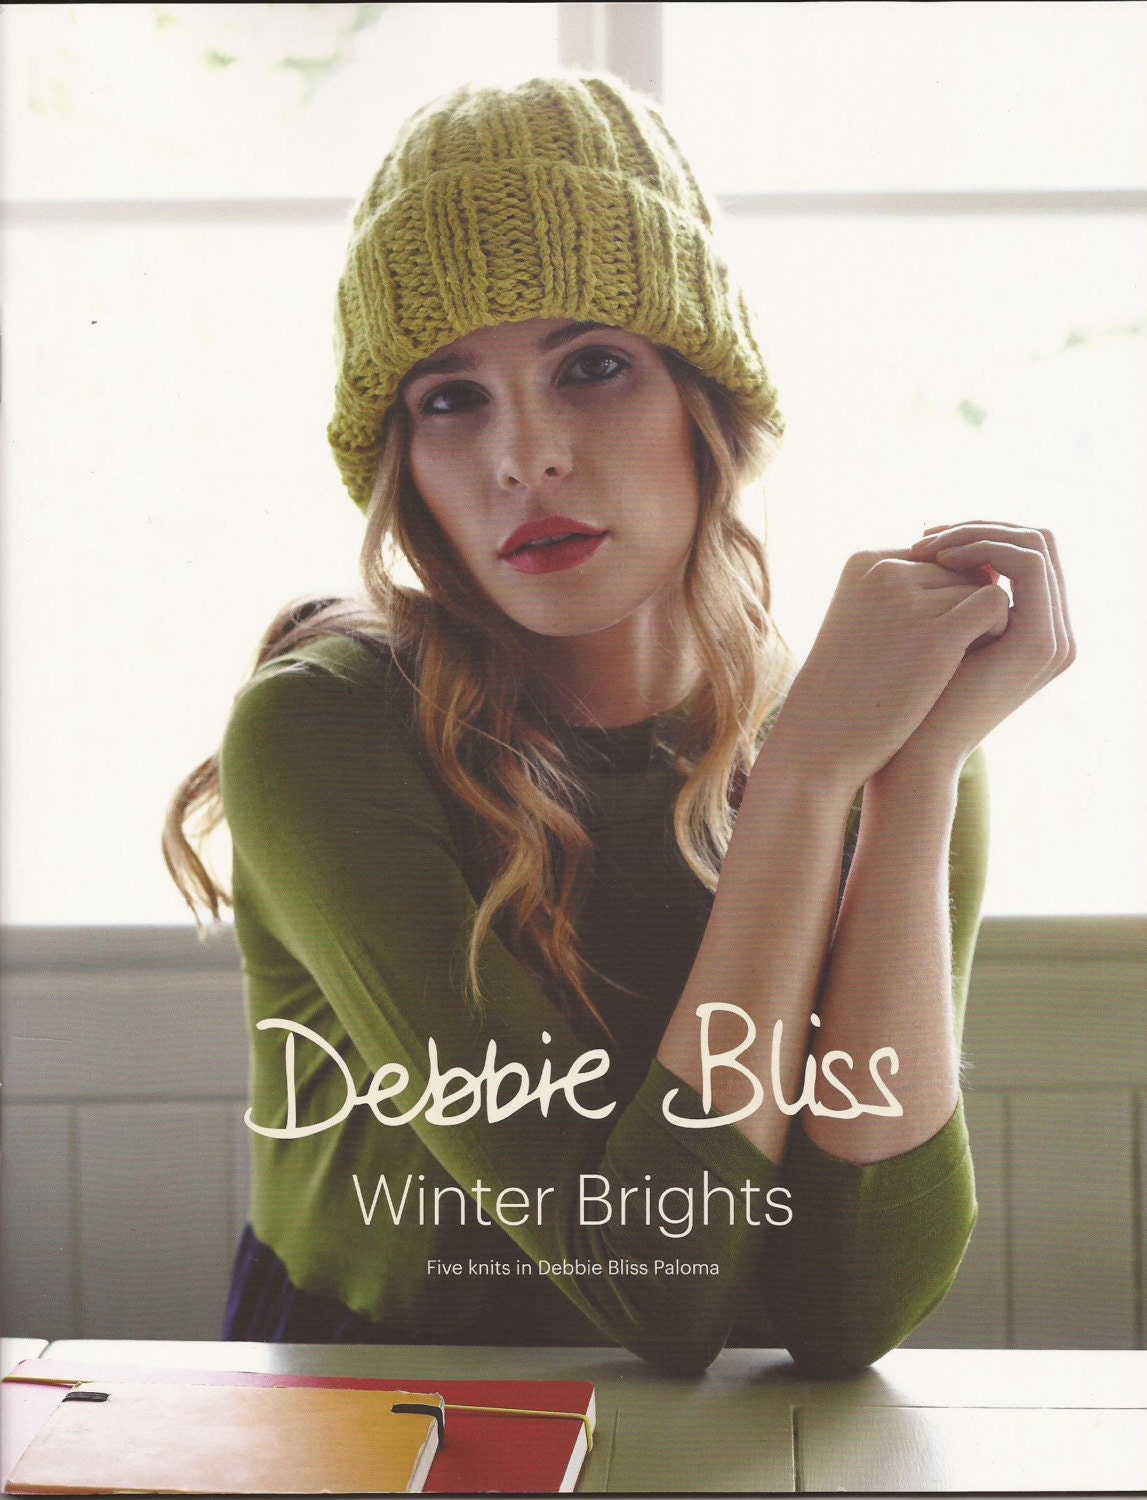 debbie bliss knitting pattern book winter brights 5 knits in